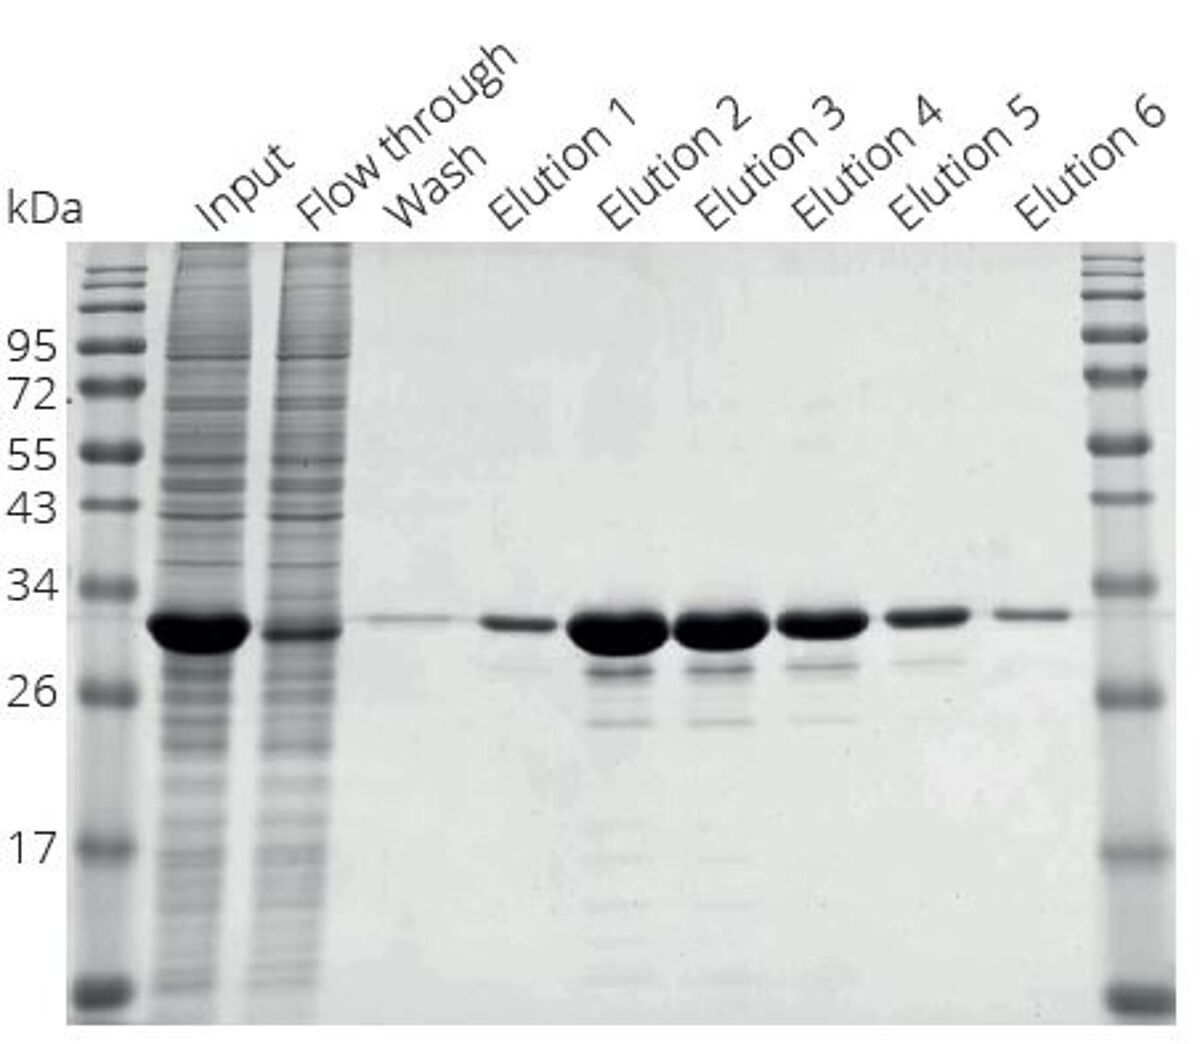 One step purification of Spot-tagged protein